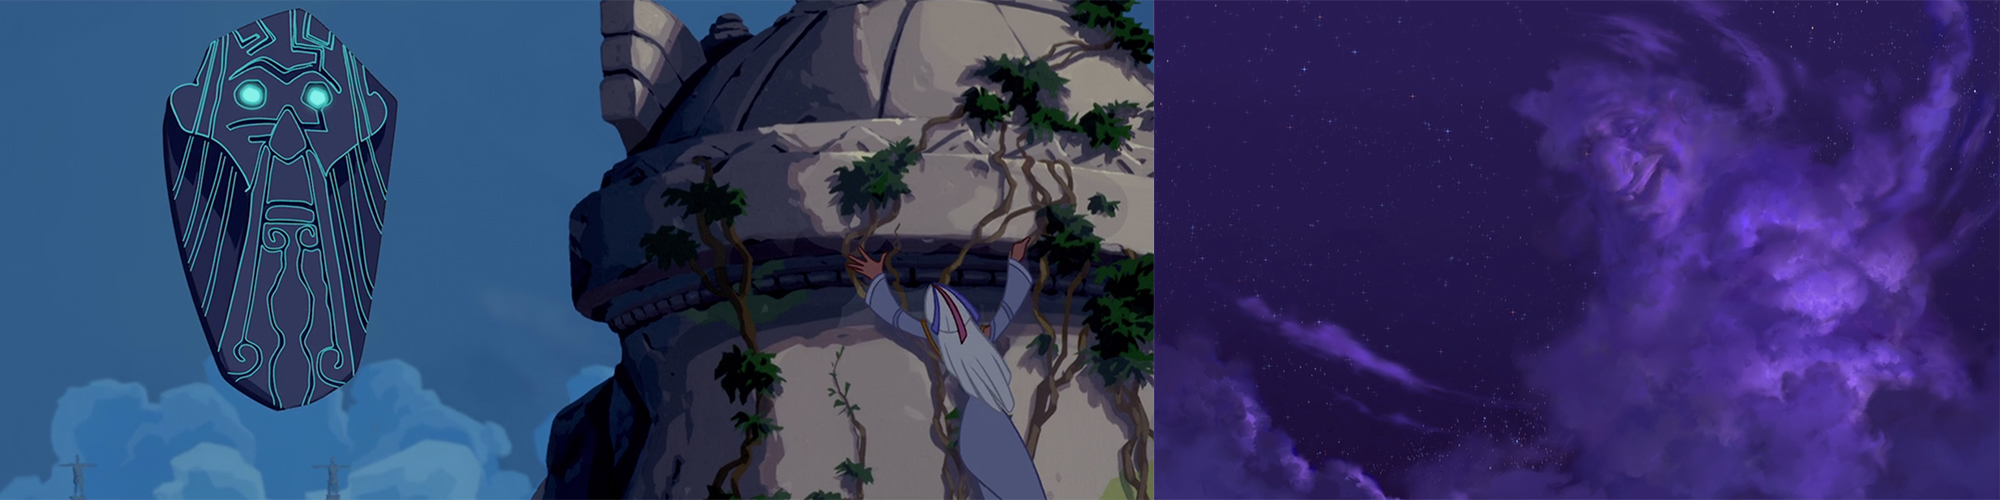 "From L to R: ""Atlantis: The Lost Empire"" (2001), ""Treasure Planet"" (2002)"